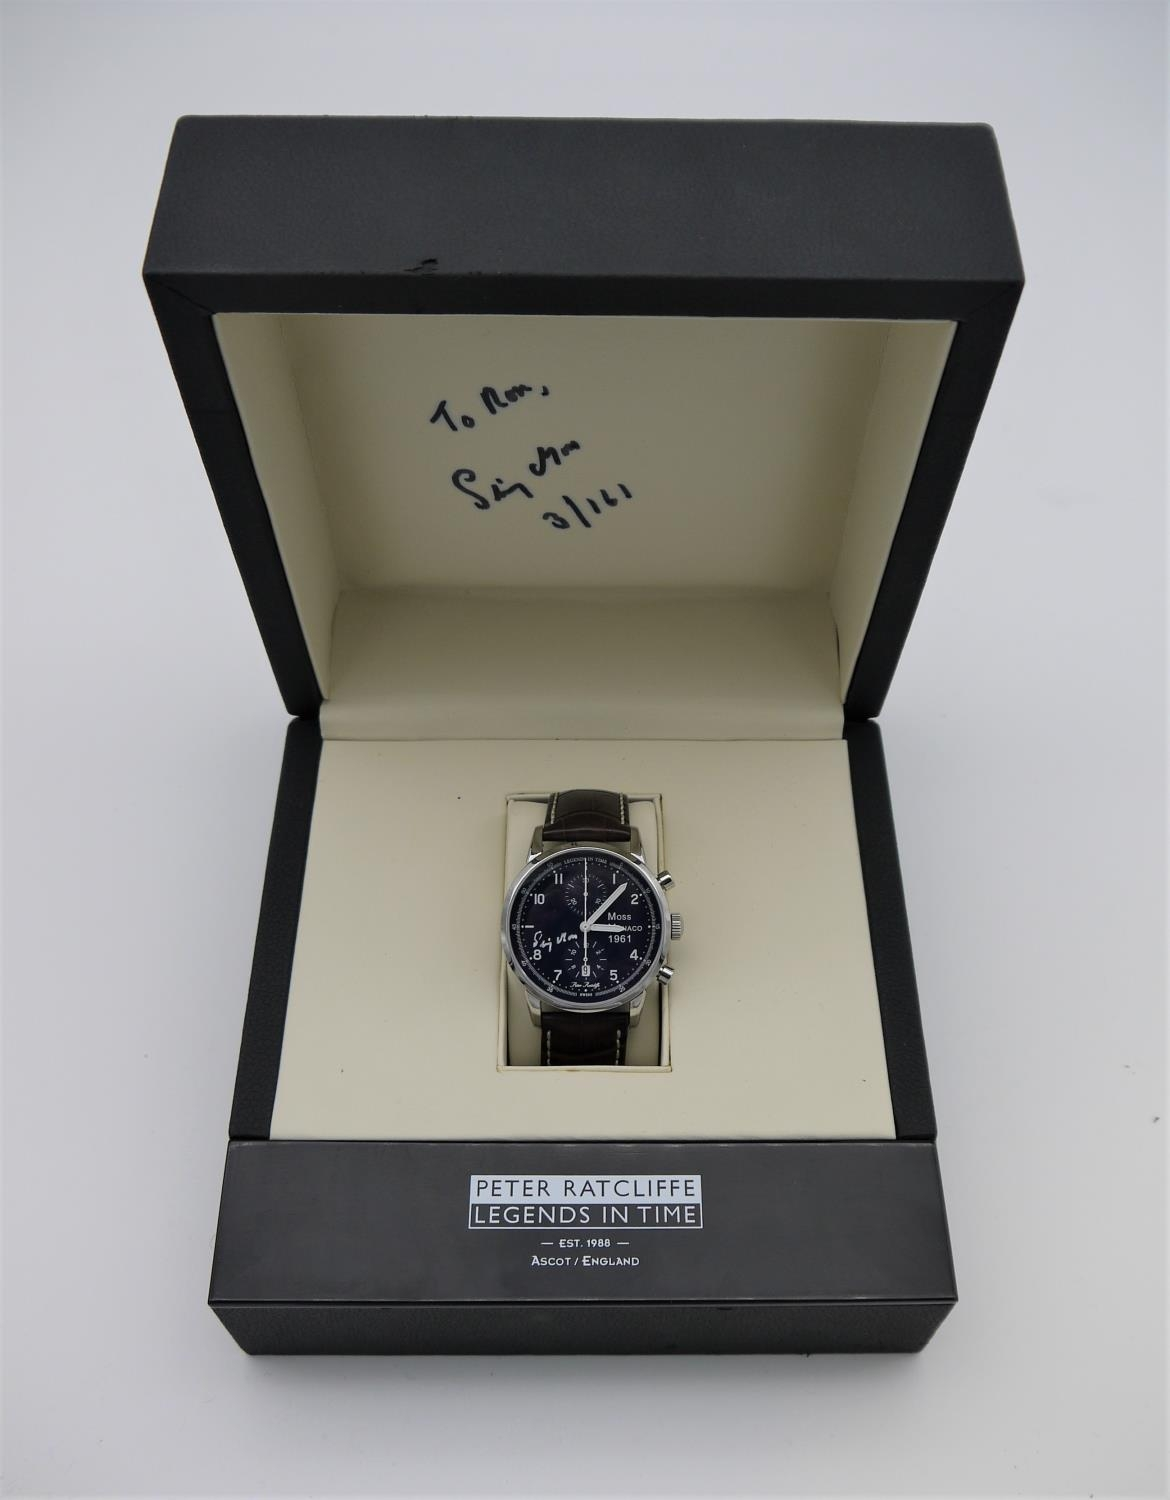 MOSS MONACO, 1961 WATCH - BY LEGENDS IN TIME, created to celebrate Stirling Moss winning the